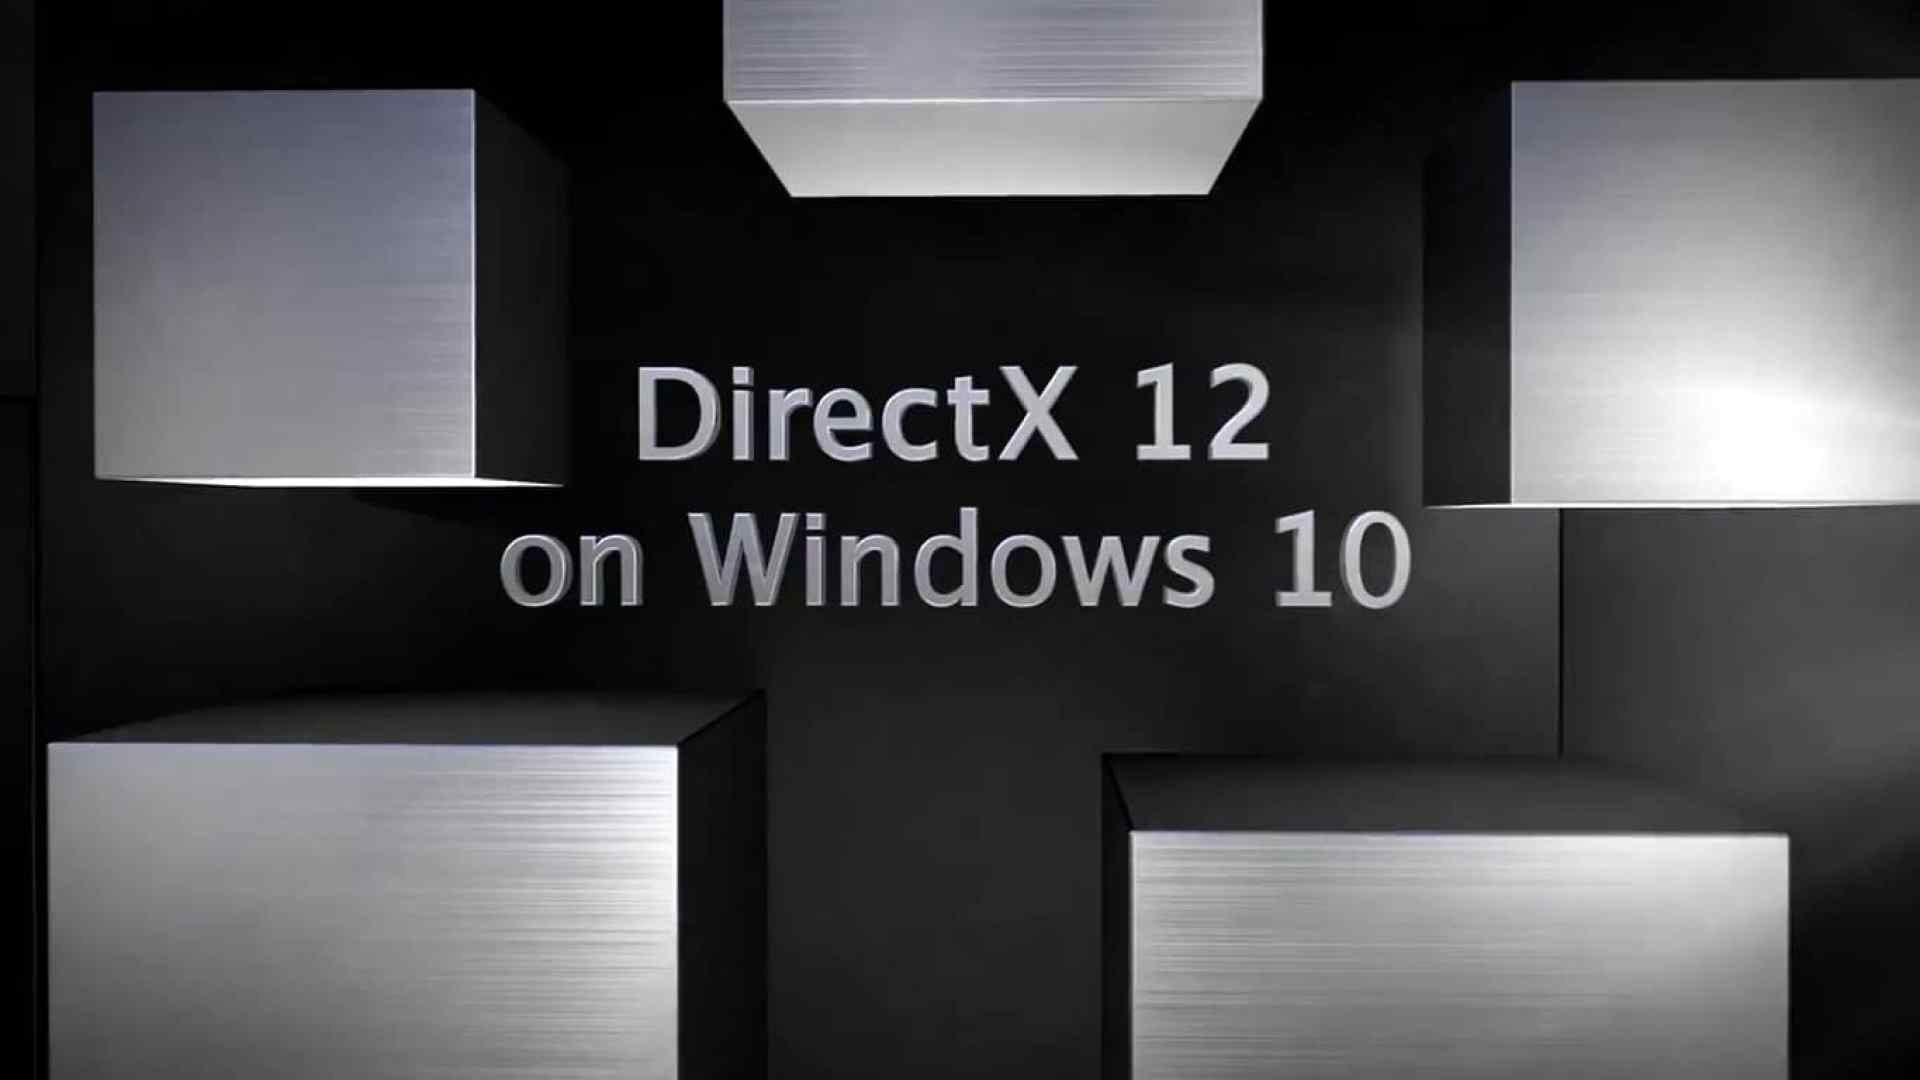 DirectX 12 on Windows 10